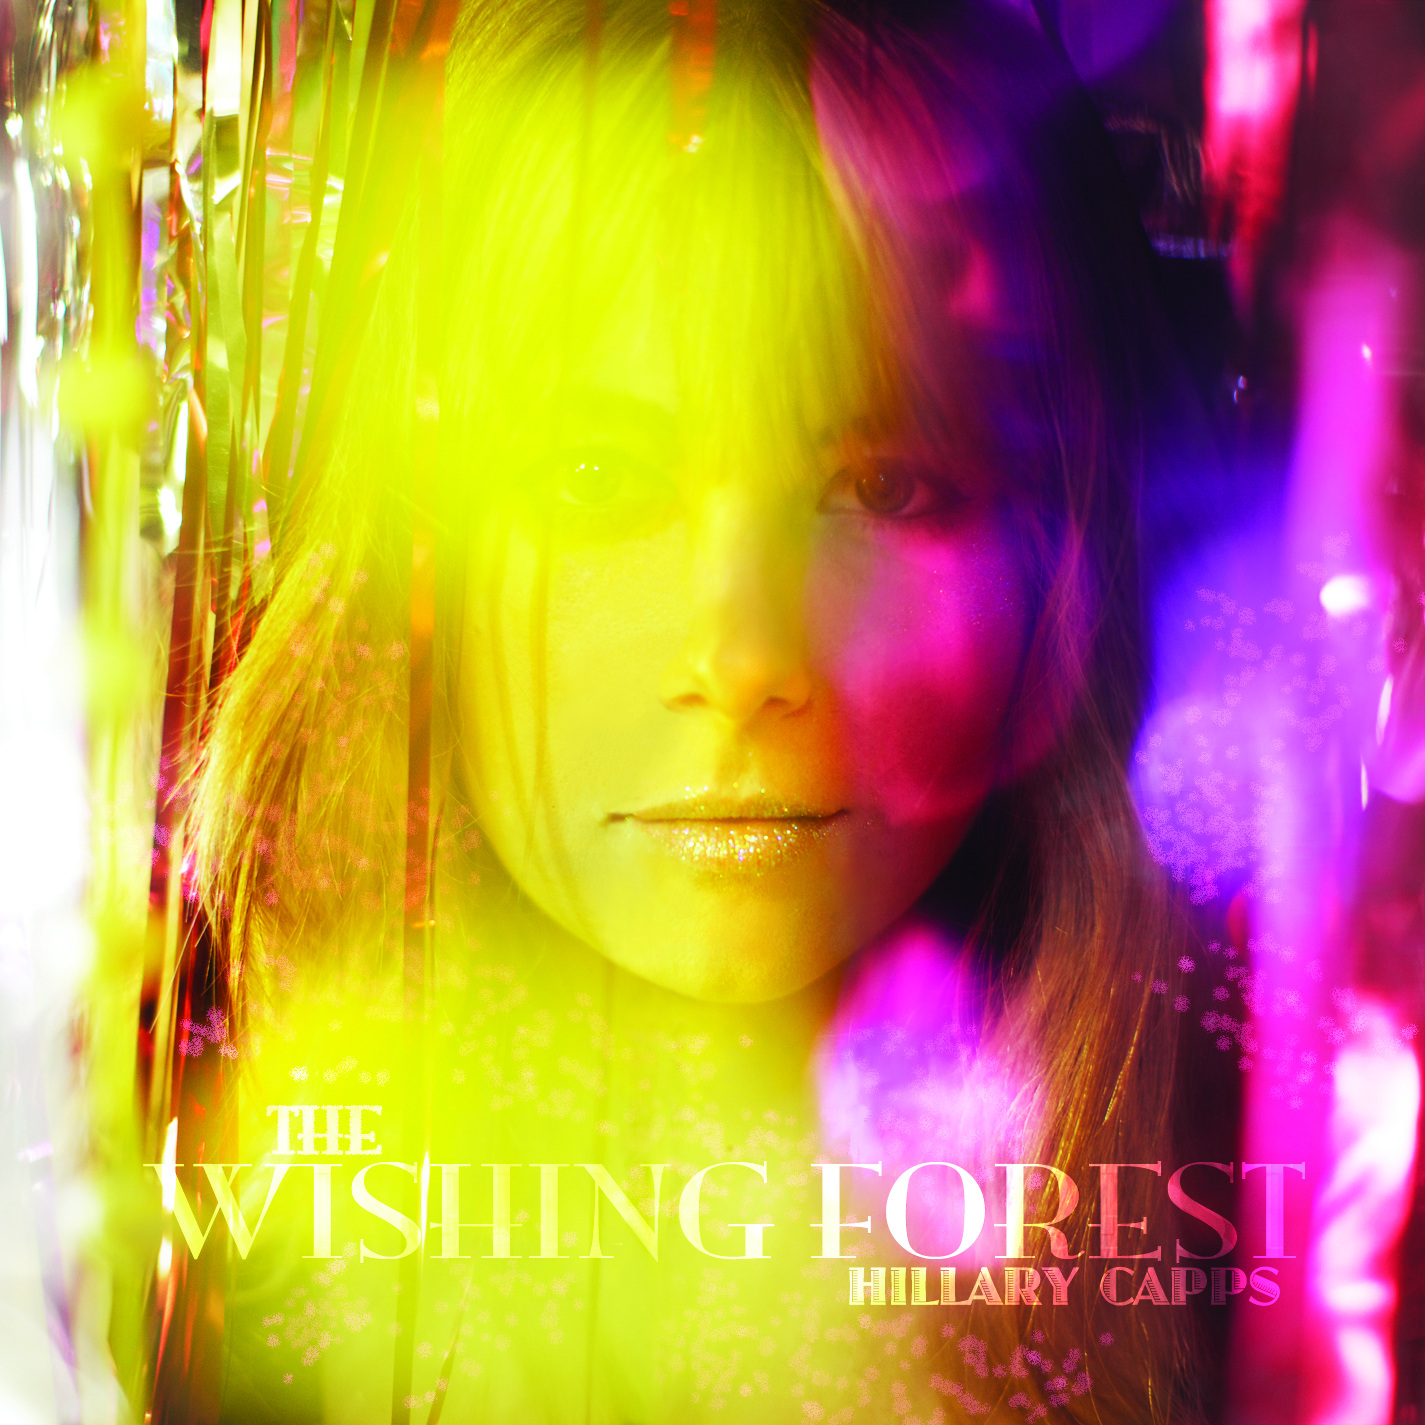 The Wishing Forest album cover